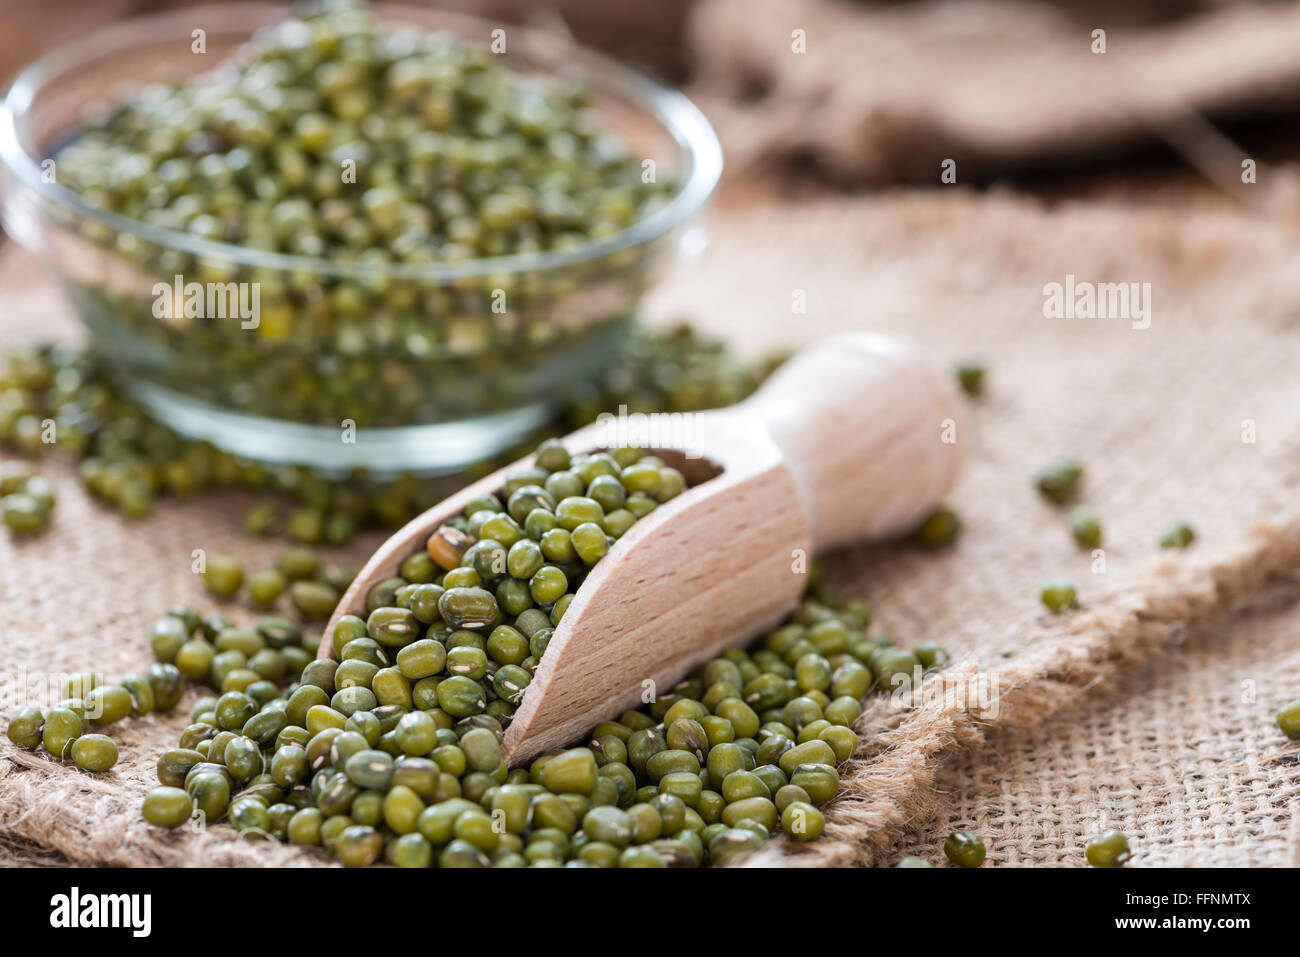 Some Mung Beans on an old wooden table (close-up shot) - Stock Image